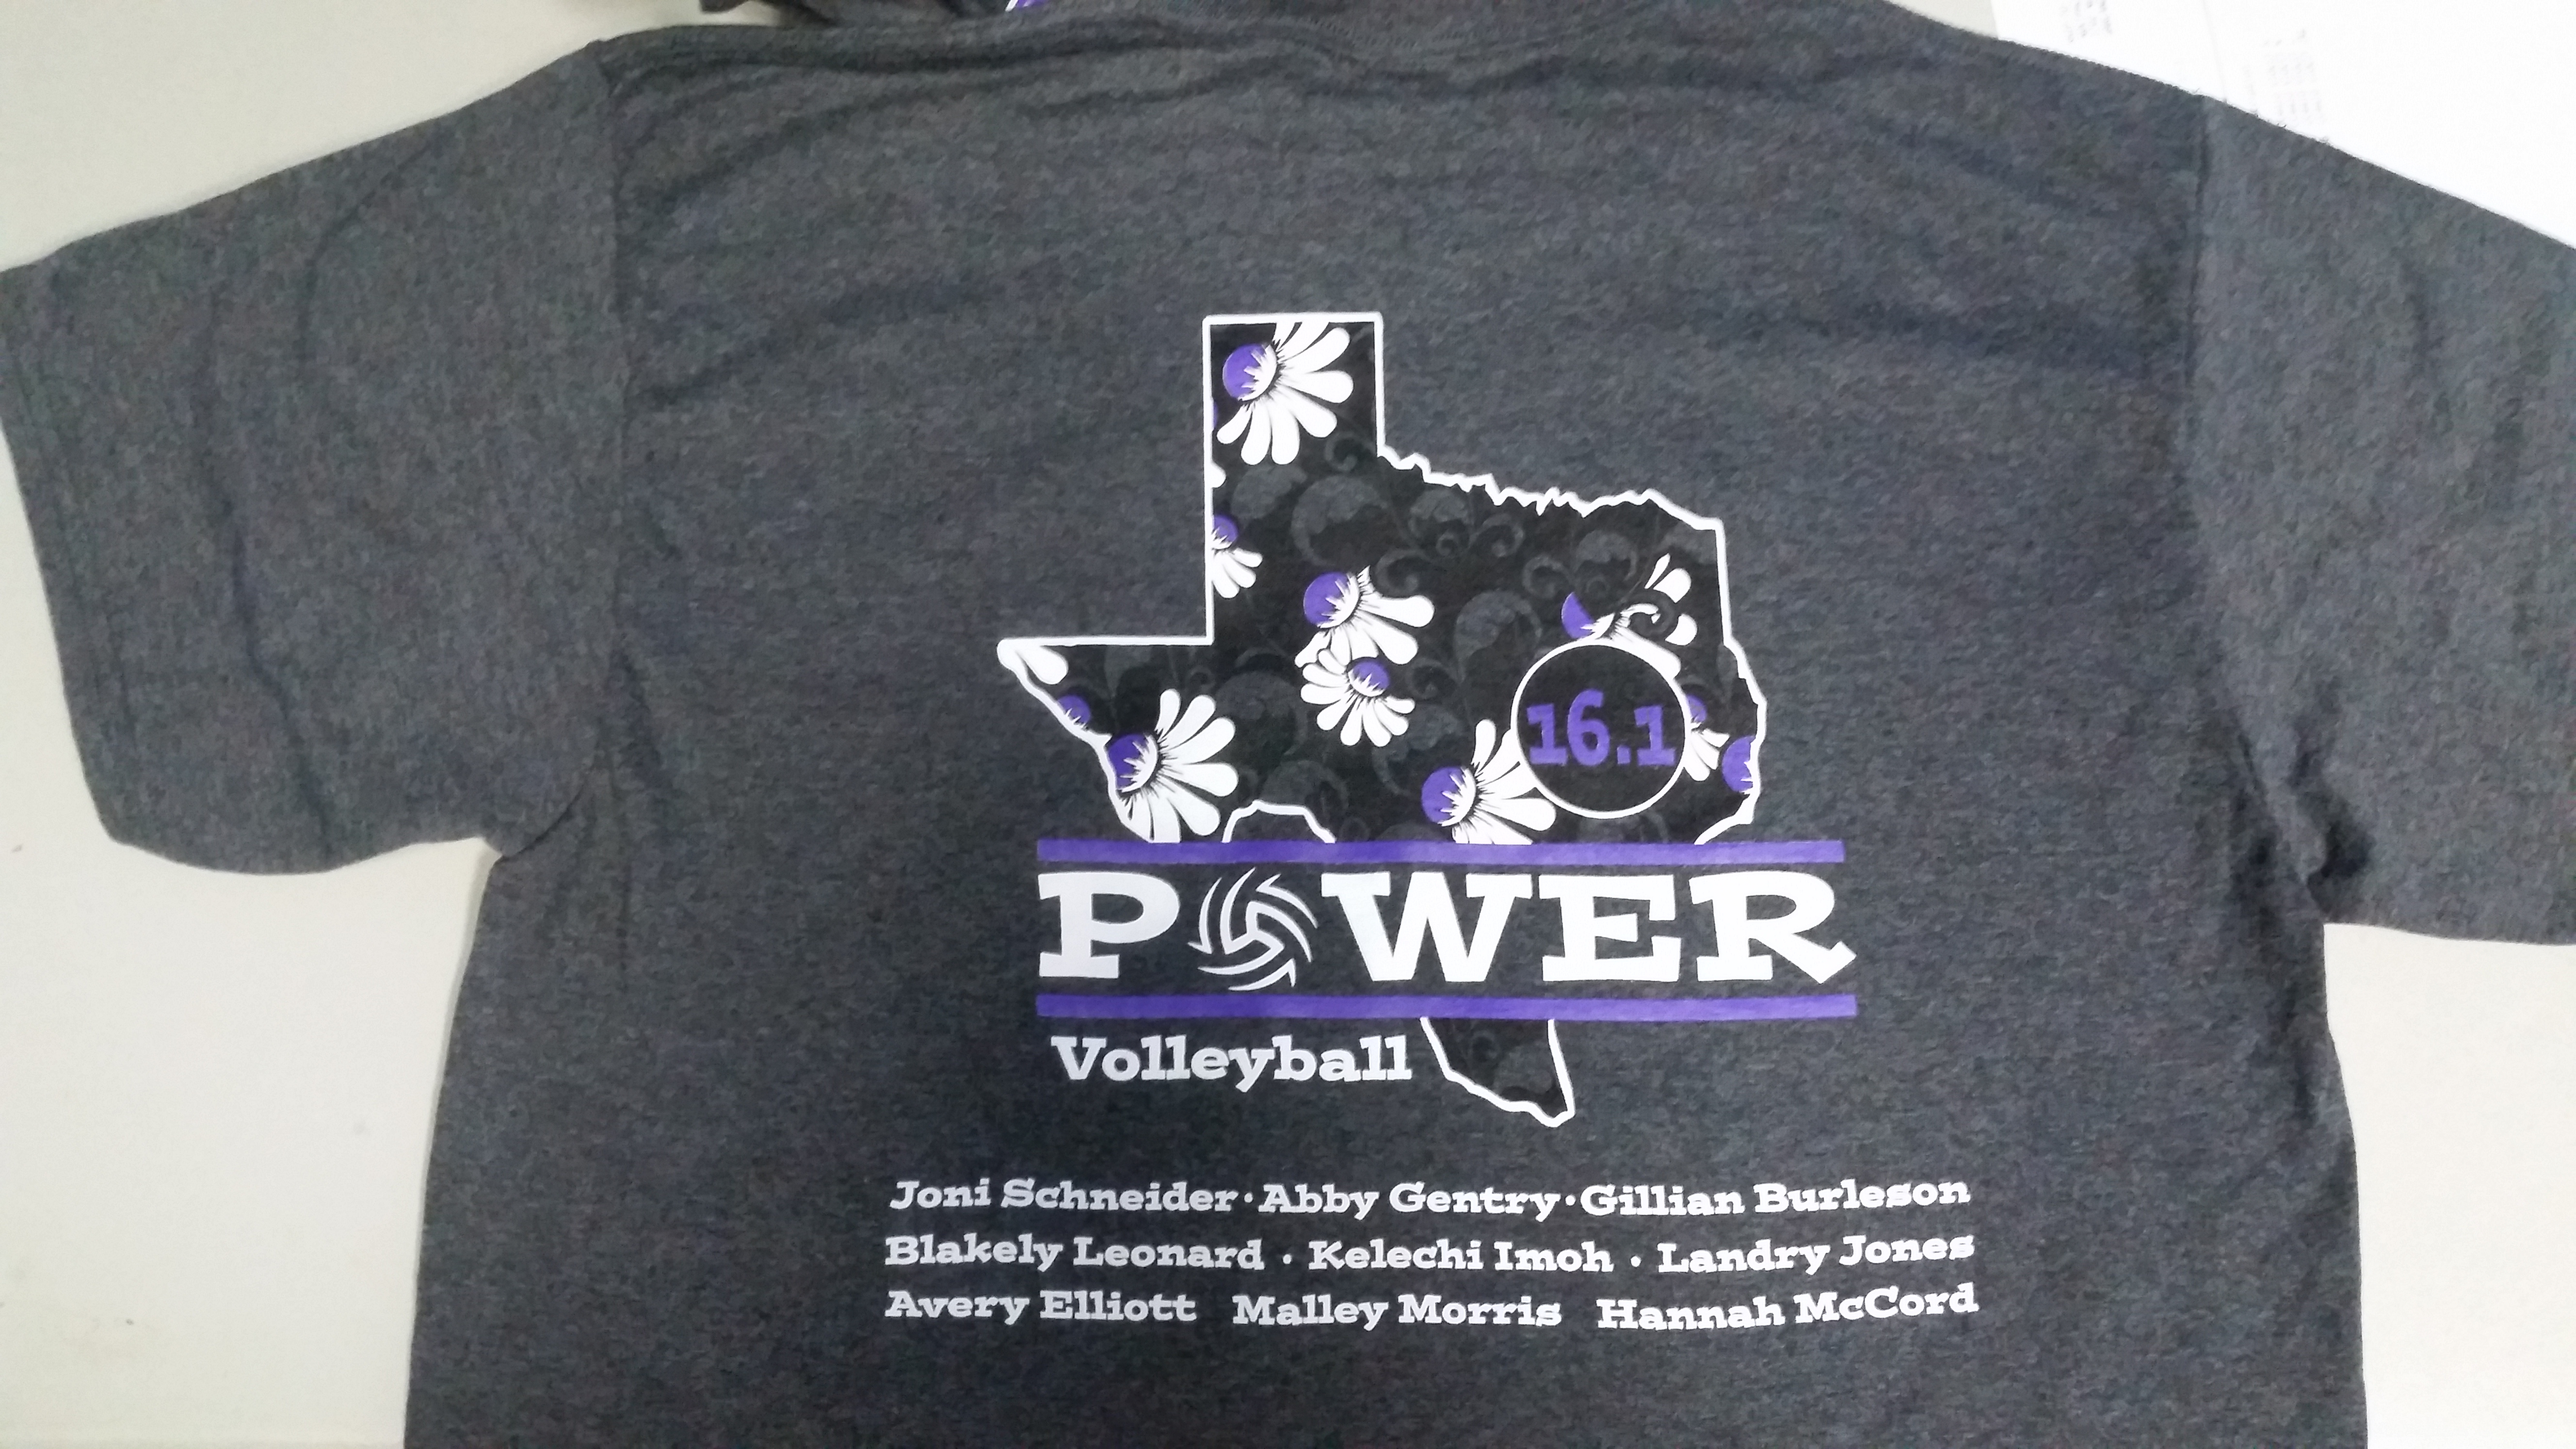 Volleyball Club Team Shirts